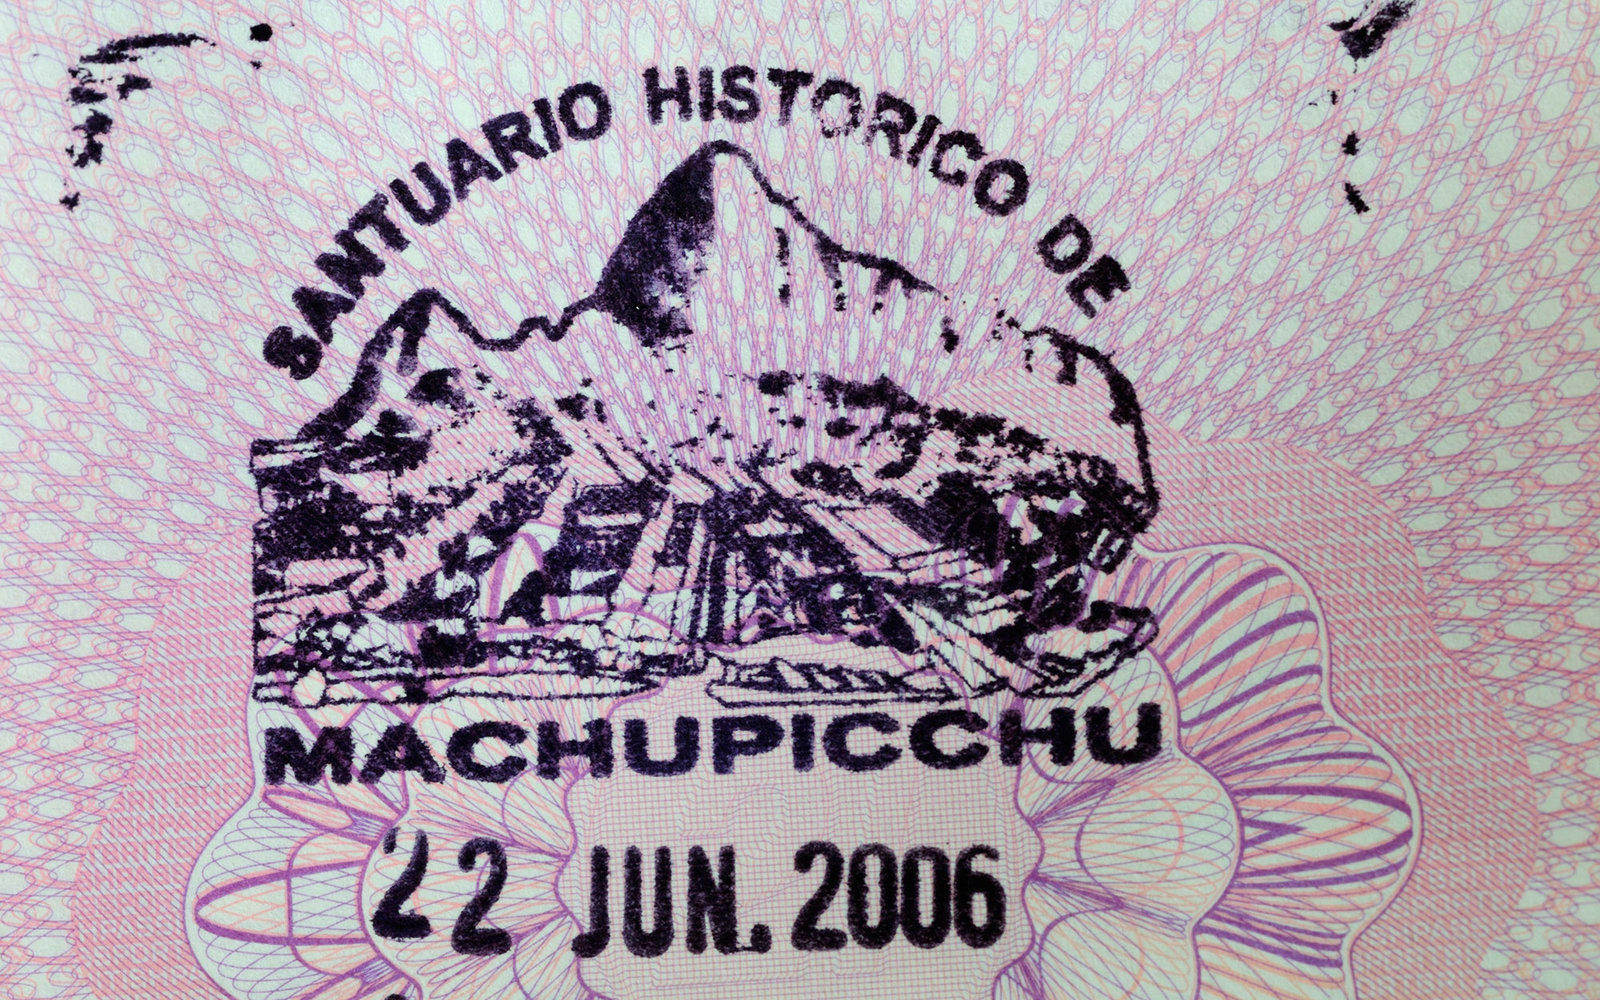 C64RM8 Machu Picchu Souvenir Passport Stamp in a United Kingdom Passport